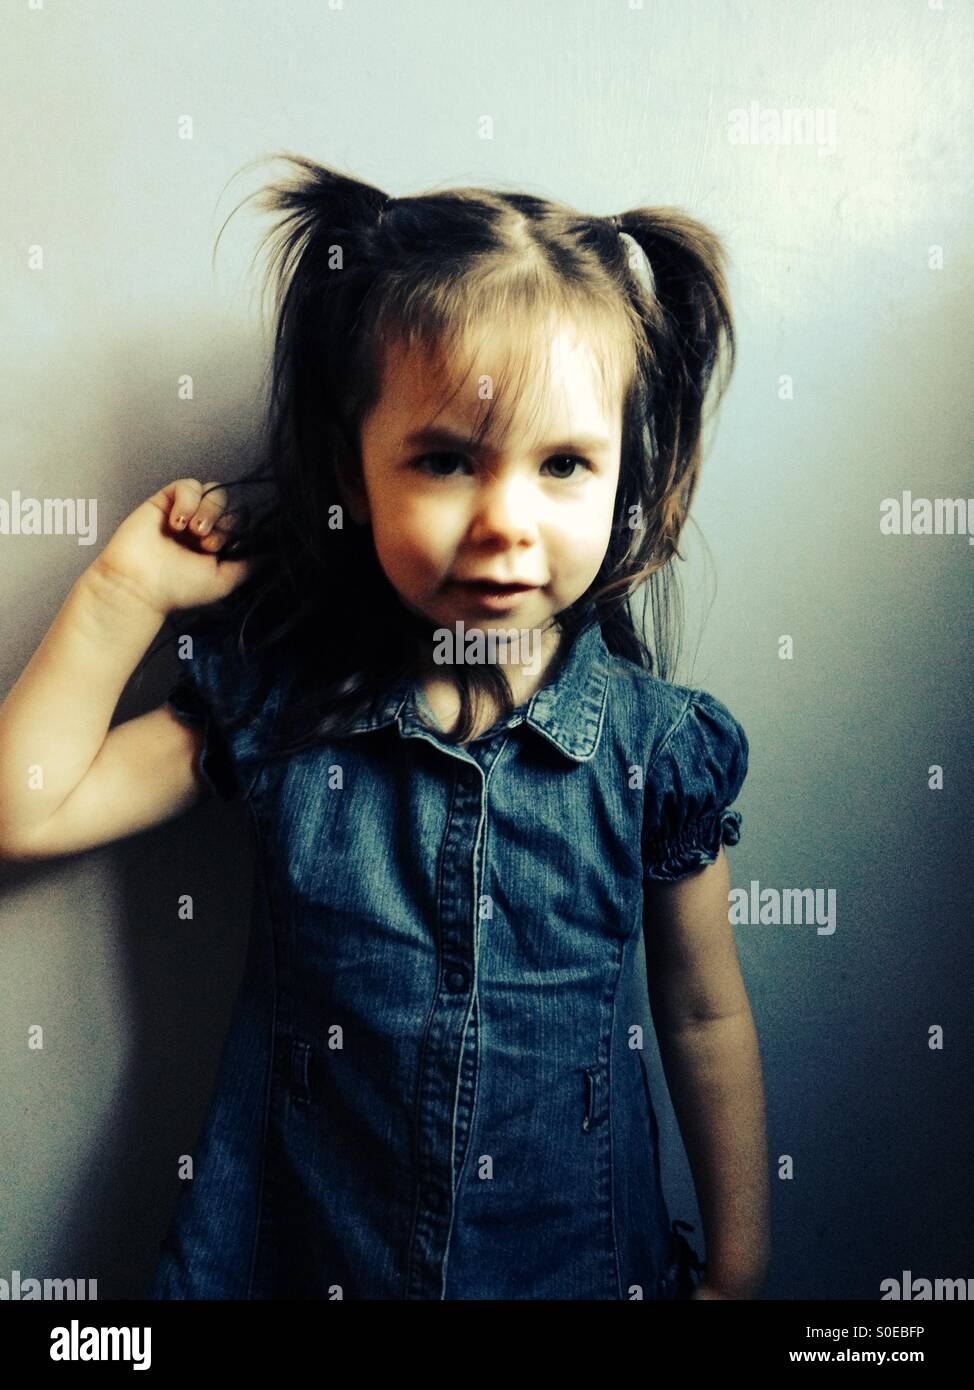 3-year old girl in denim dress and pigtails in her hair - Stock Image